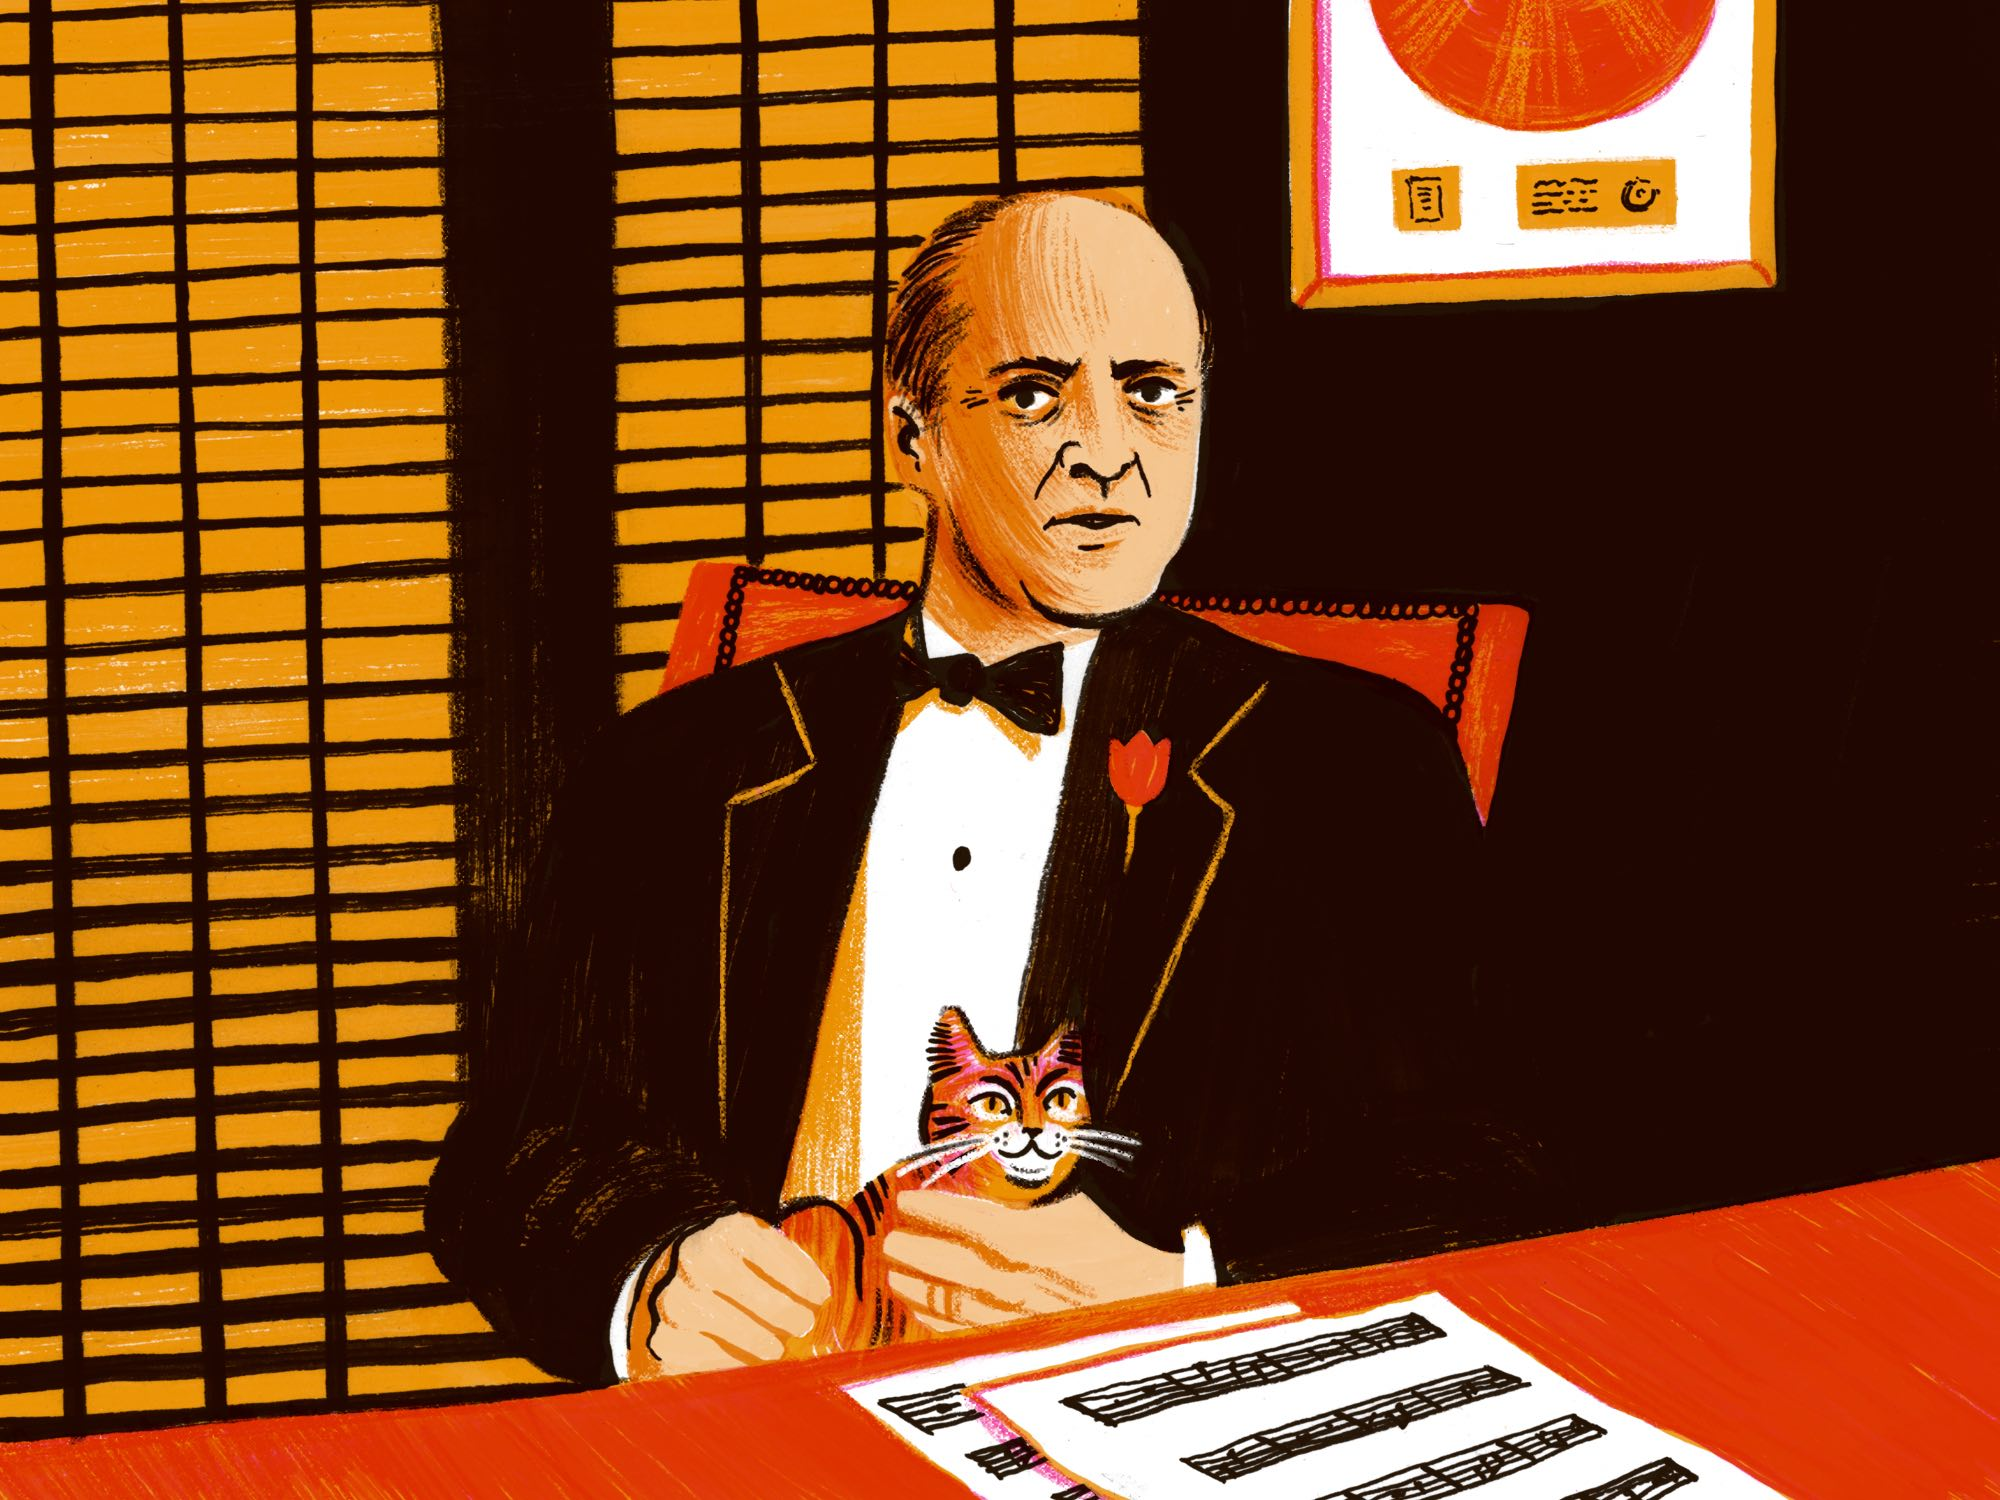 The Godfather illustration by Hayley Wells